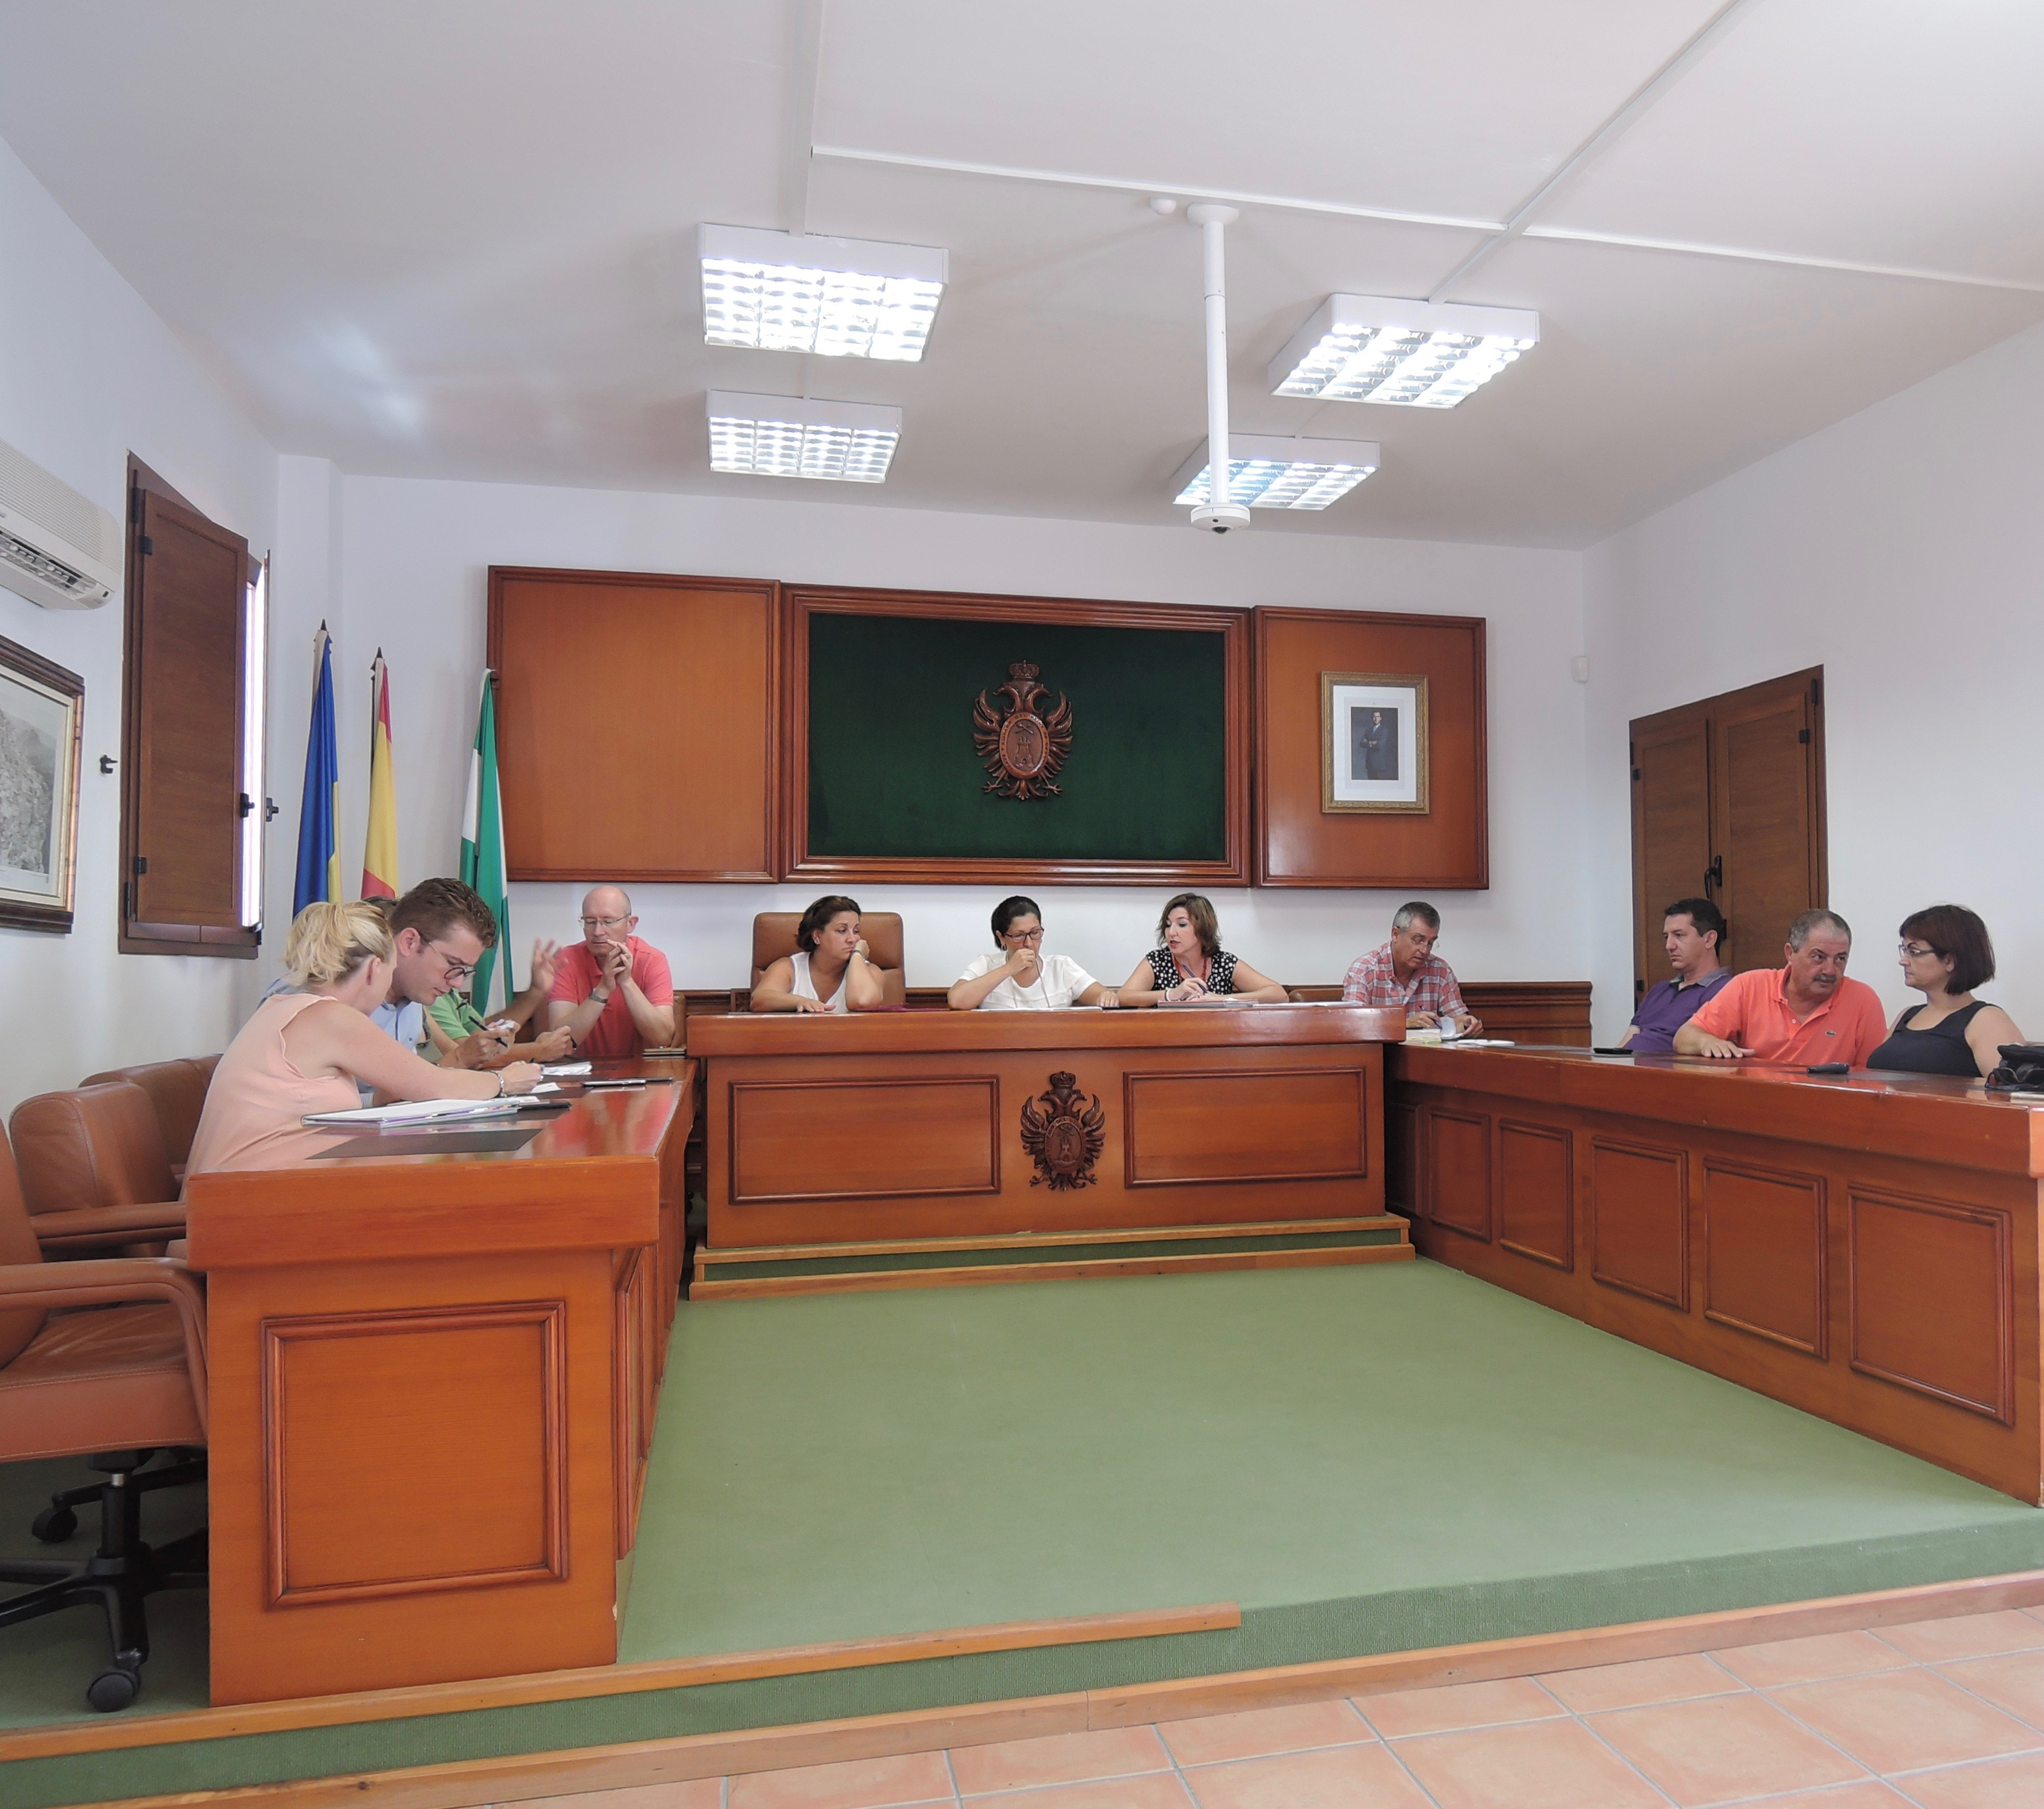 Mojácar Council held an ordinary plenary session which included the request to the Junta de Andalucía to set in motion the expansion of its Hotel and Catering School, which is of great traditional importance in the town.